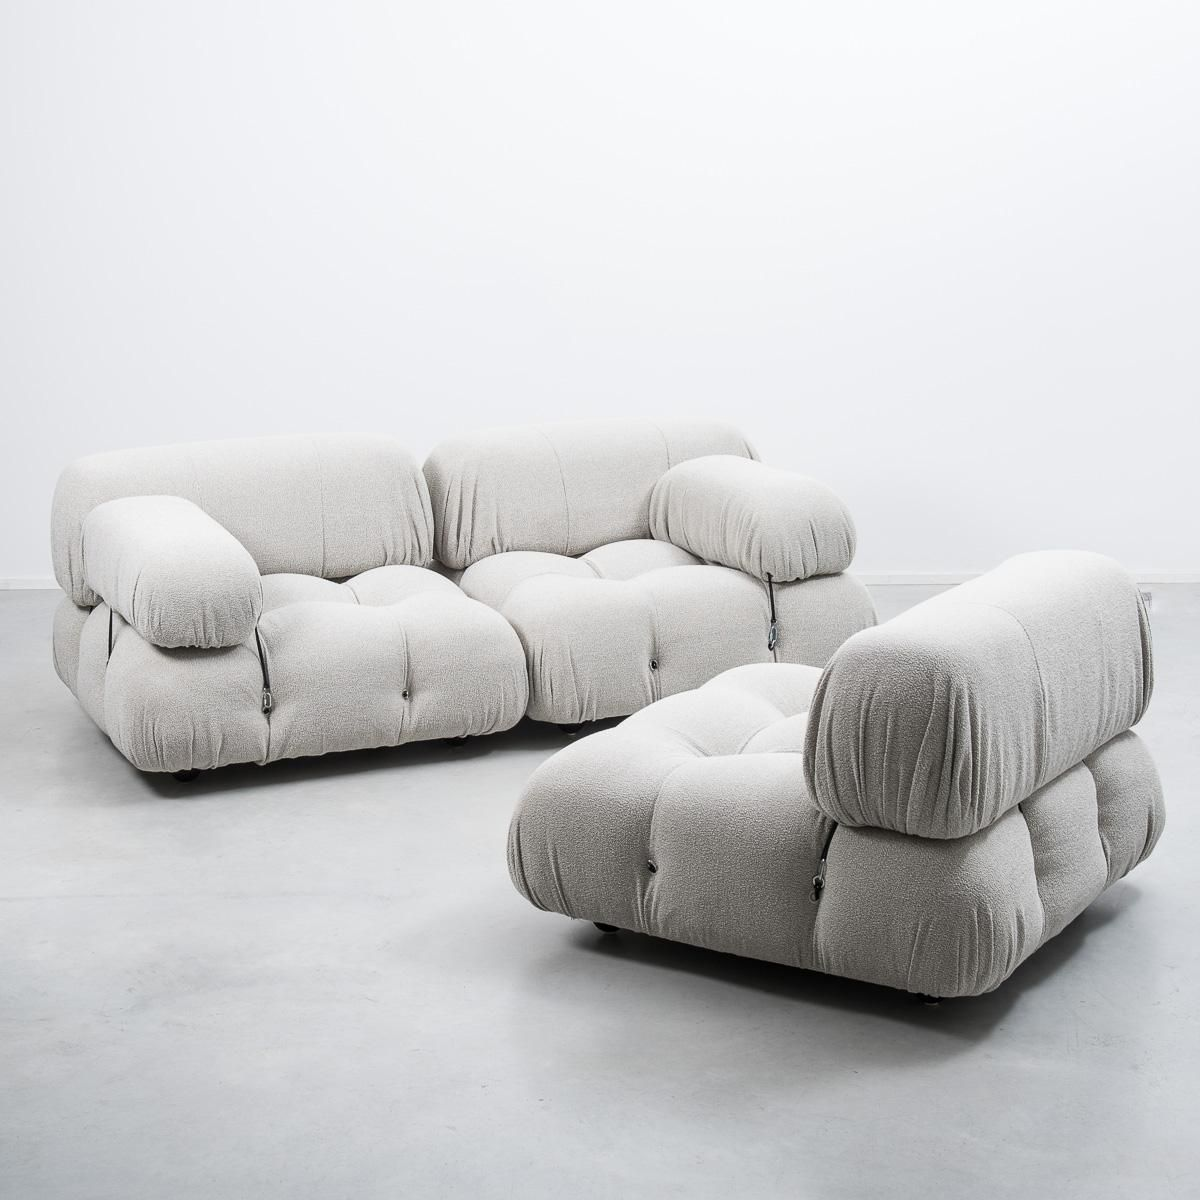 Divano Jean B&b Camaleonda Three Seater Modular Sofa By Mario Bellini For B B